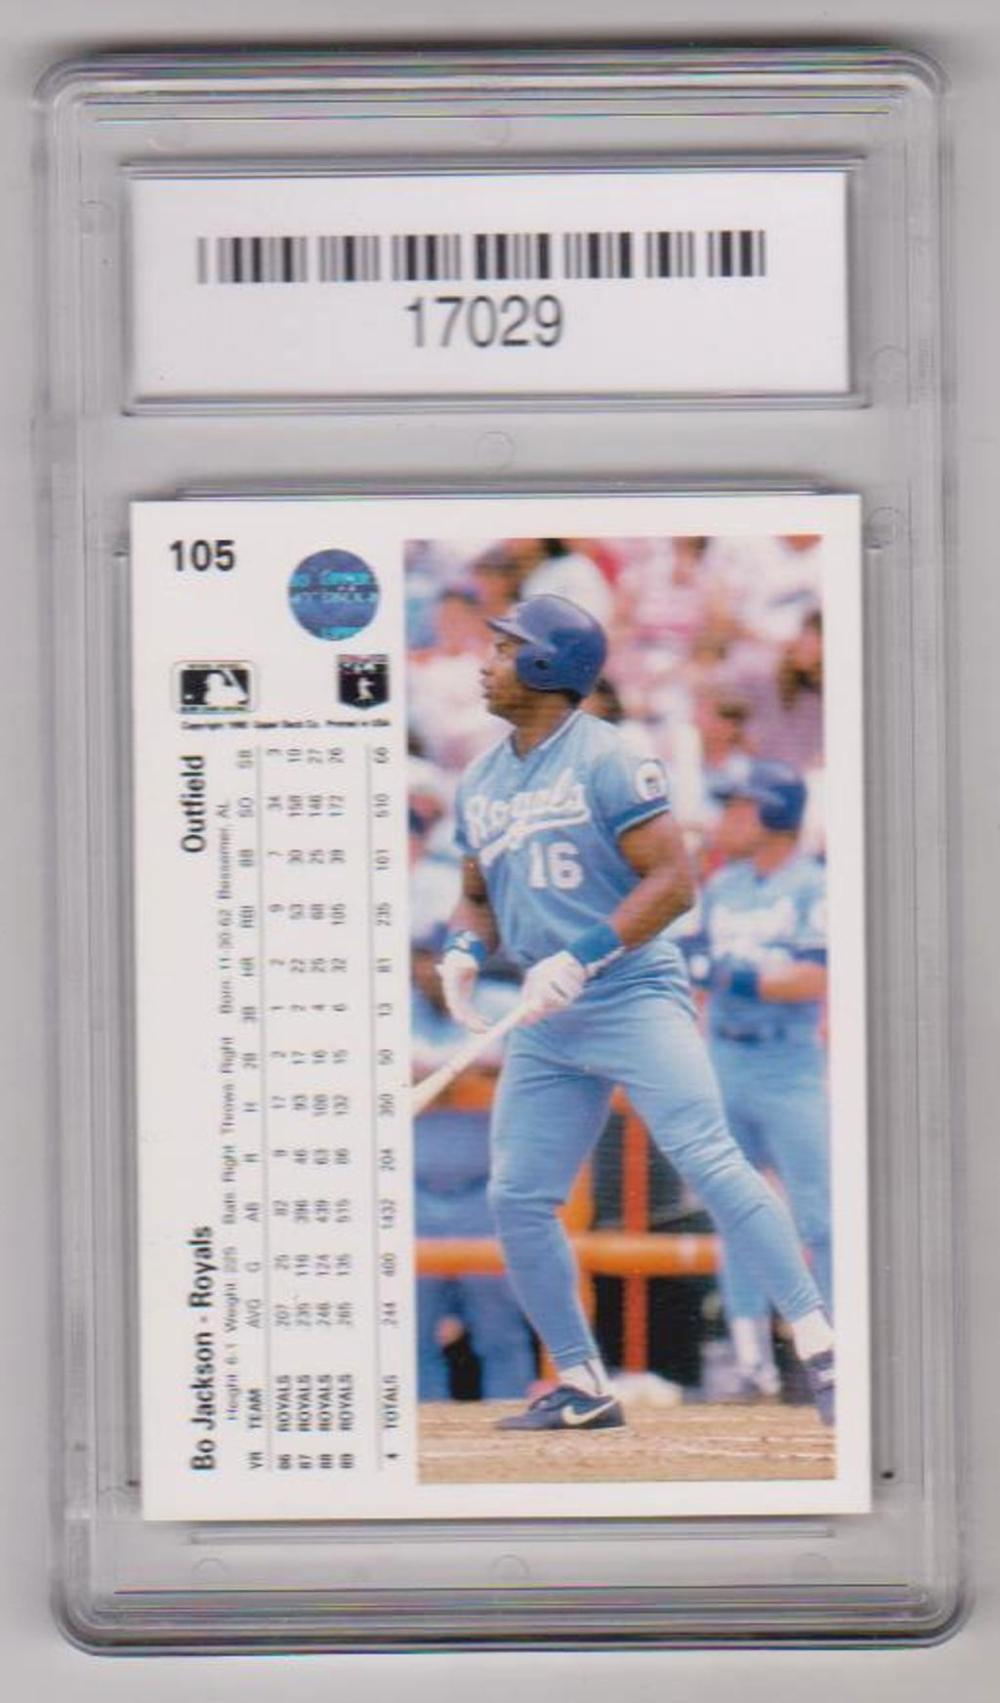 Graded Gem Mint 10 Bo Jackson 1990 Upper Deck 105 Card